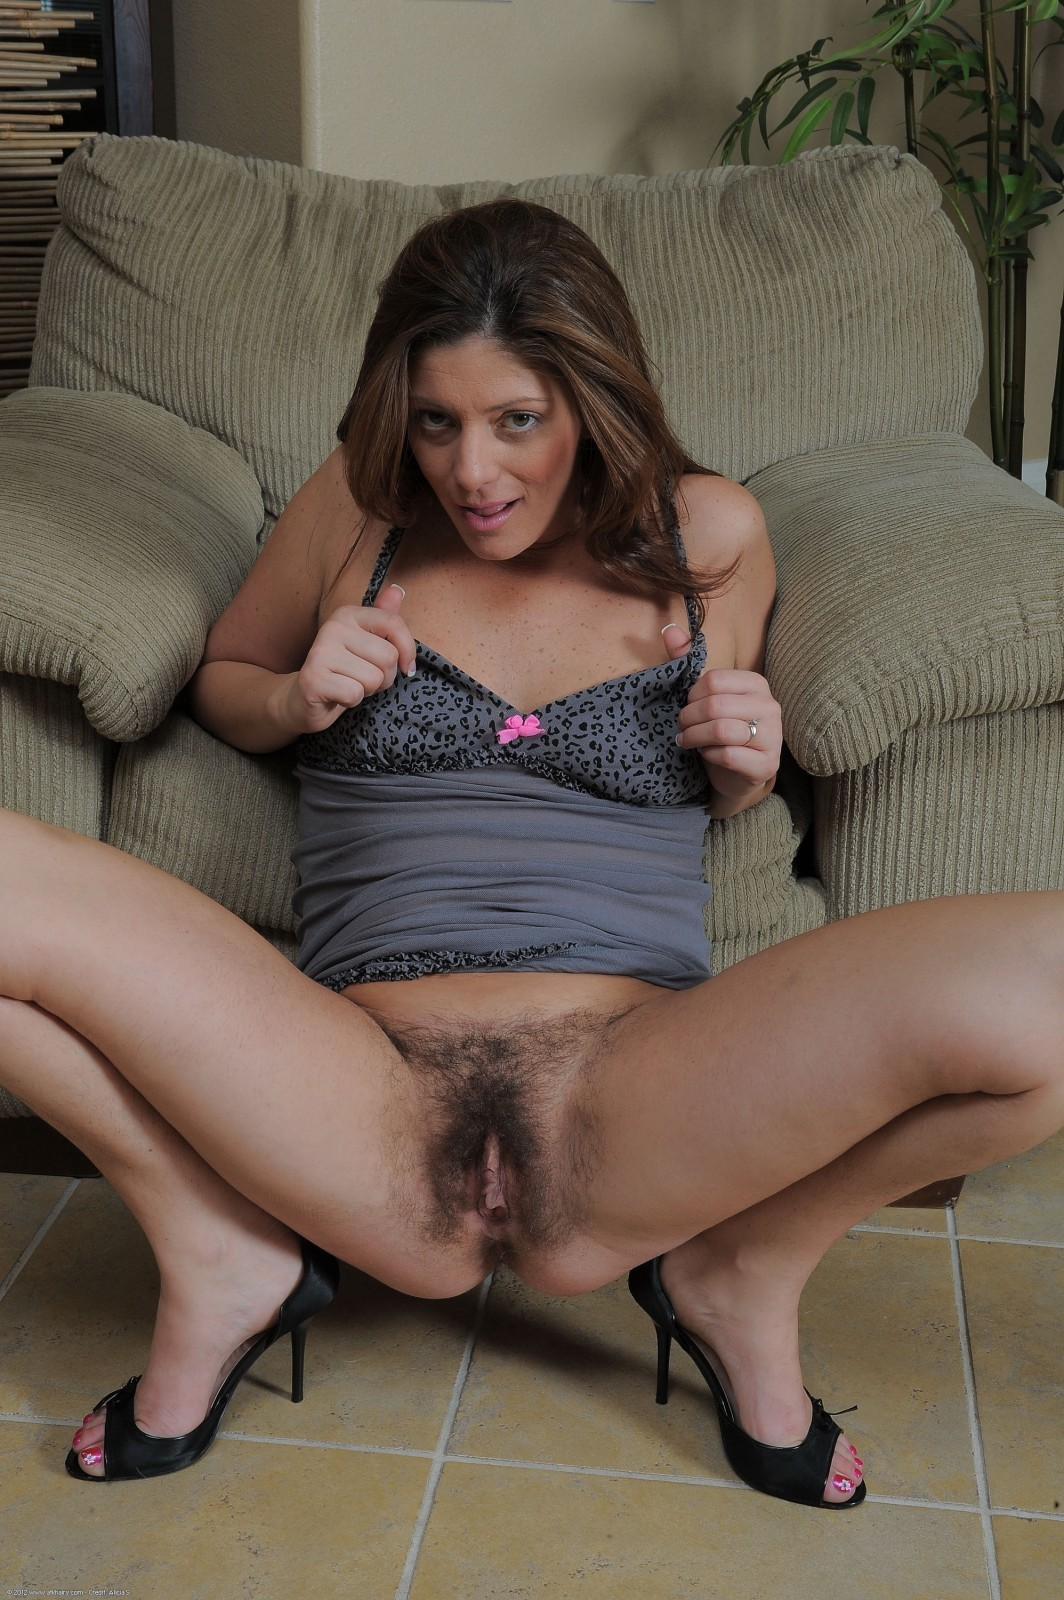 the incredibles porn incredibles porn videos part ATKHairy, Beautiful, Bush, Bush, Cougar, Gorgeous, Hairy, Hairypussy, Hairypussy, Hippie, Hirsute, Hot, Mature, Milf, Milf, Mom, Mommy, Natural, Nudist, Outdoornudity, Pam012, Pamela, Pussy, Sexy, Wife